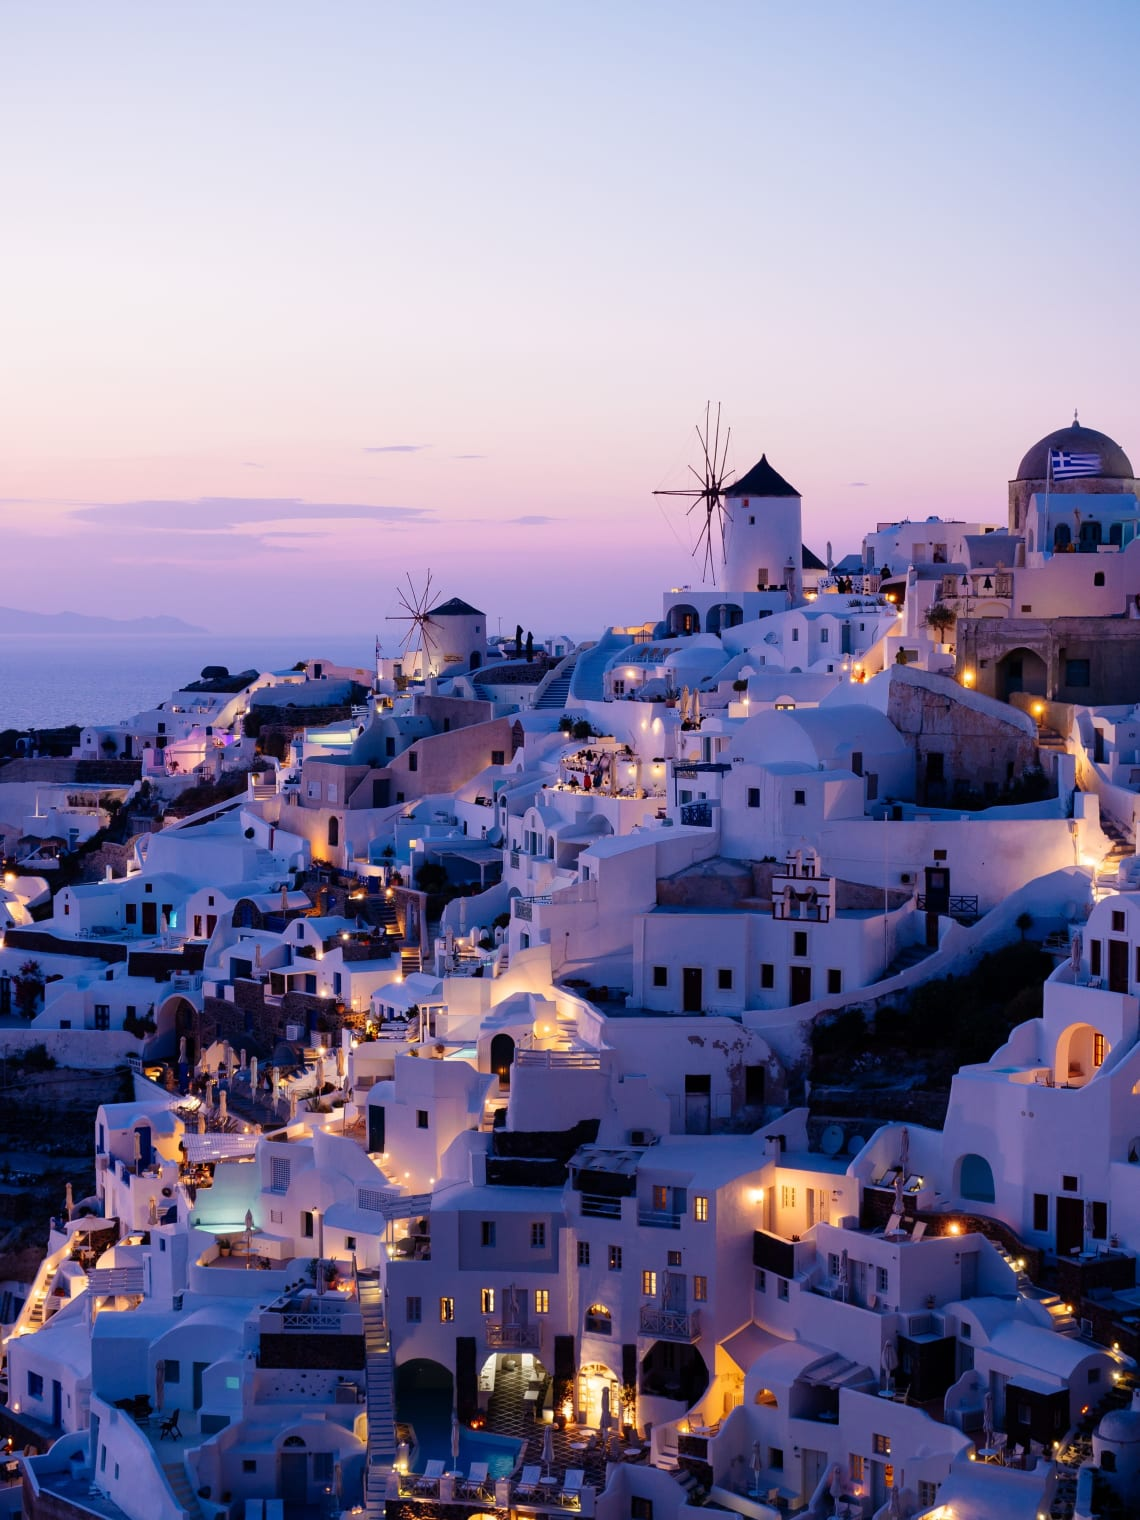 Oia, Greece at night